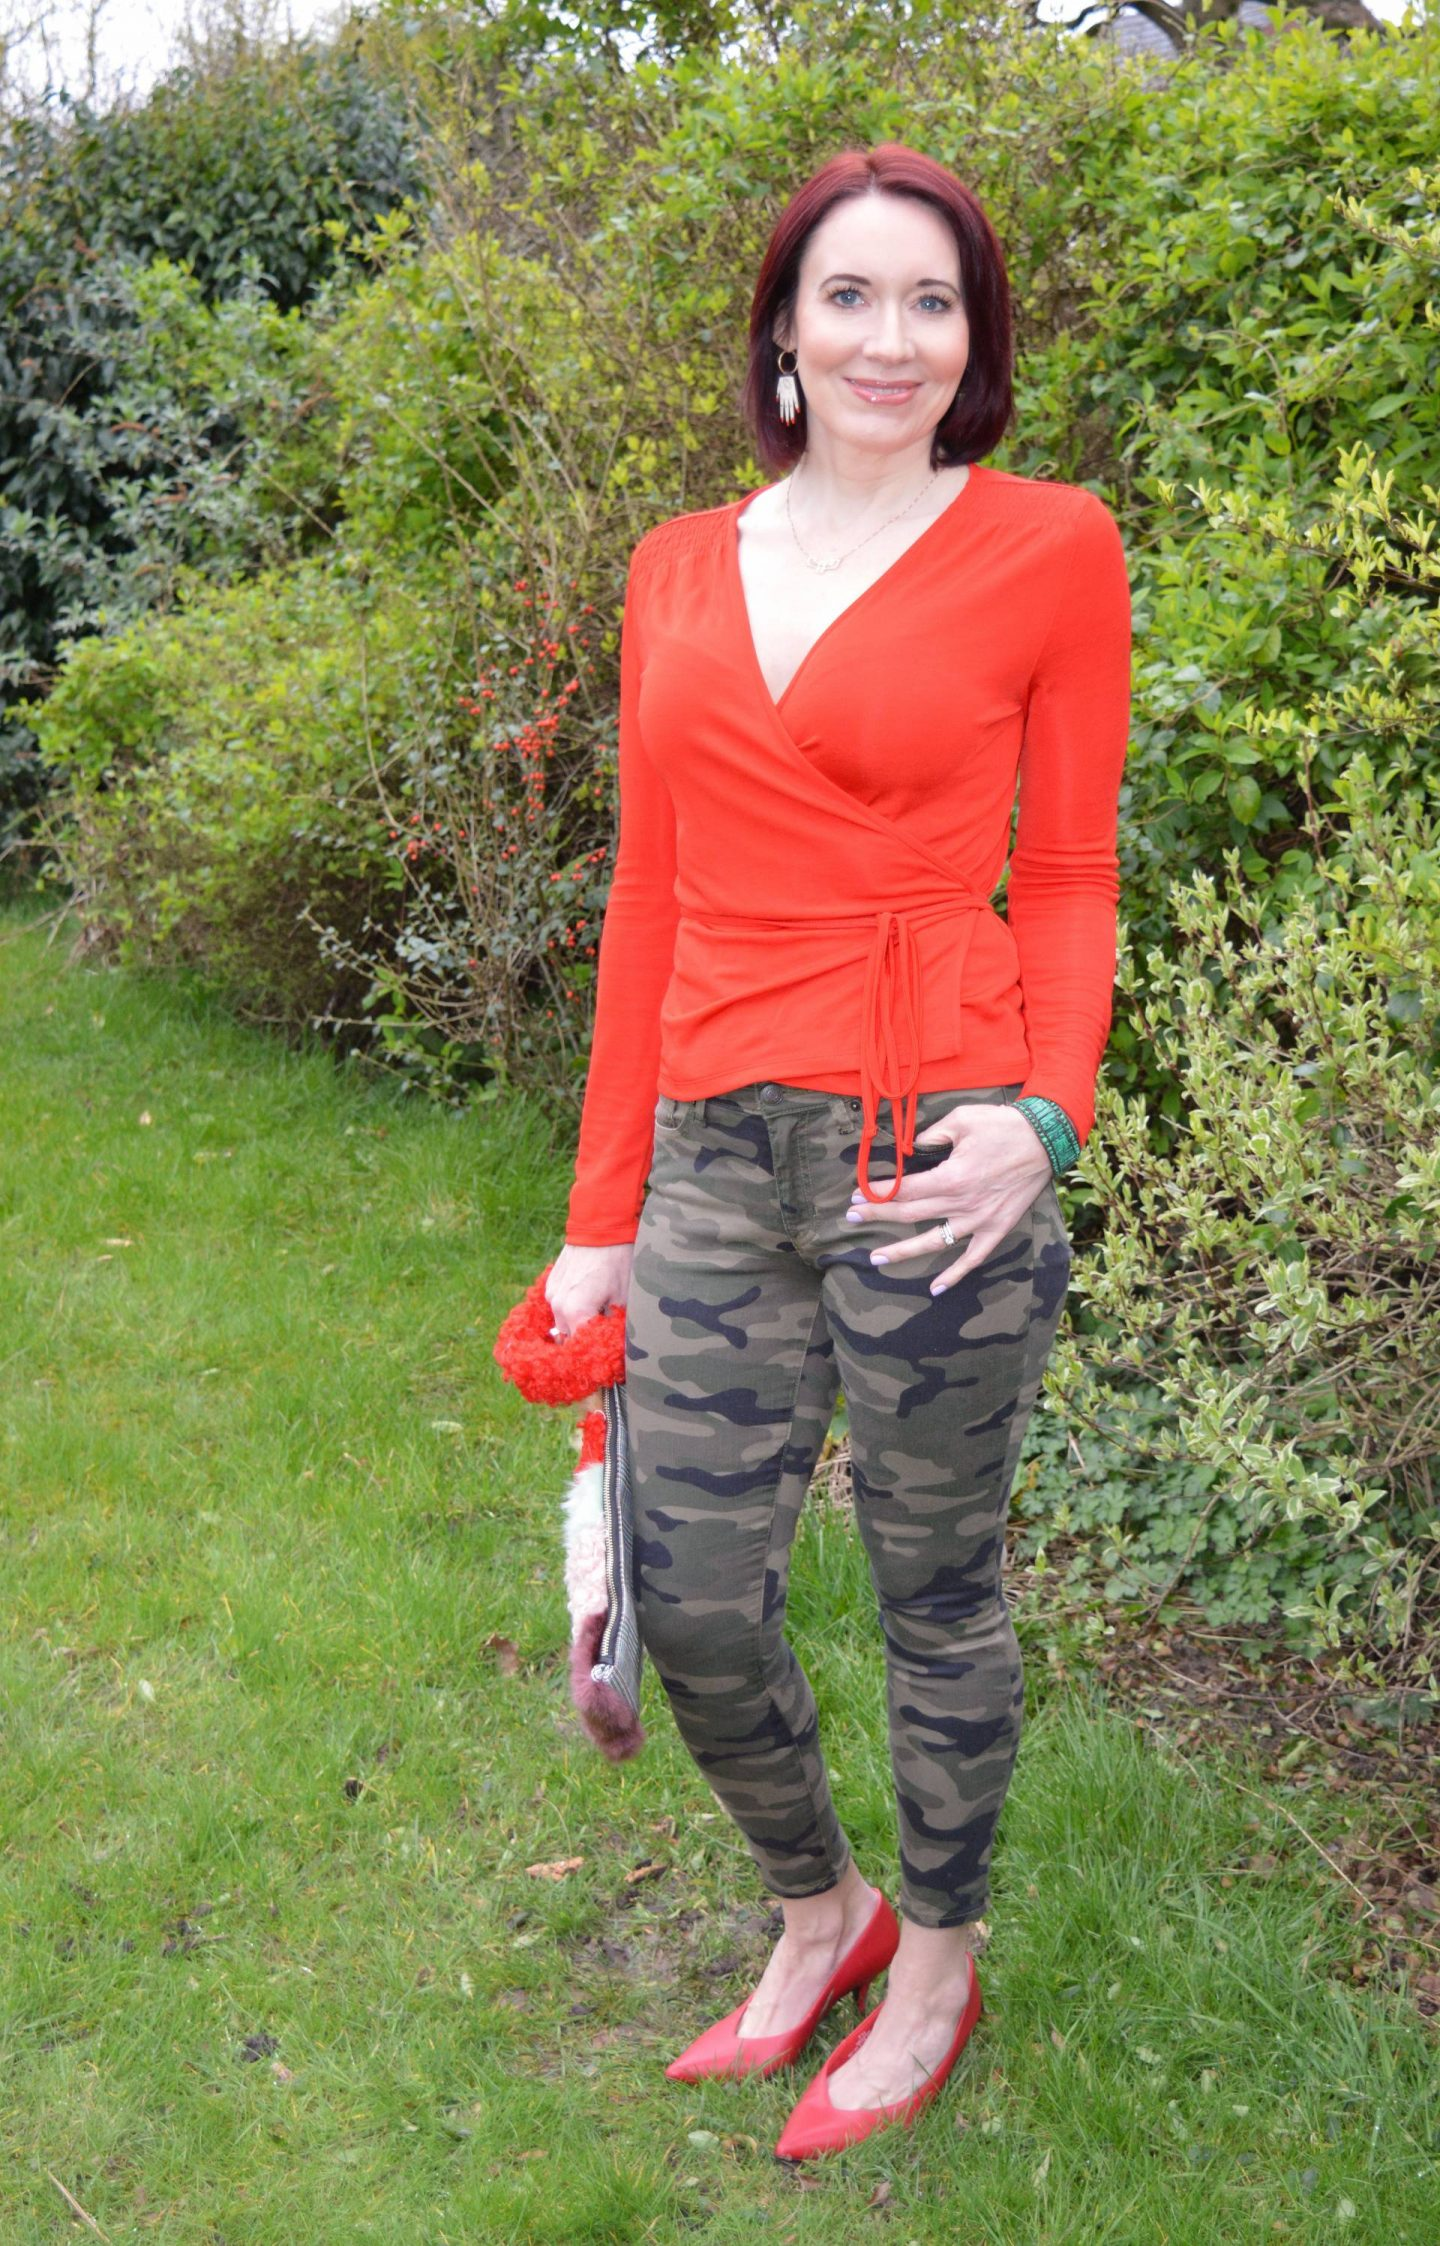 Camo Print Skinny Jeans and Red Wrap Top